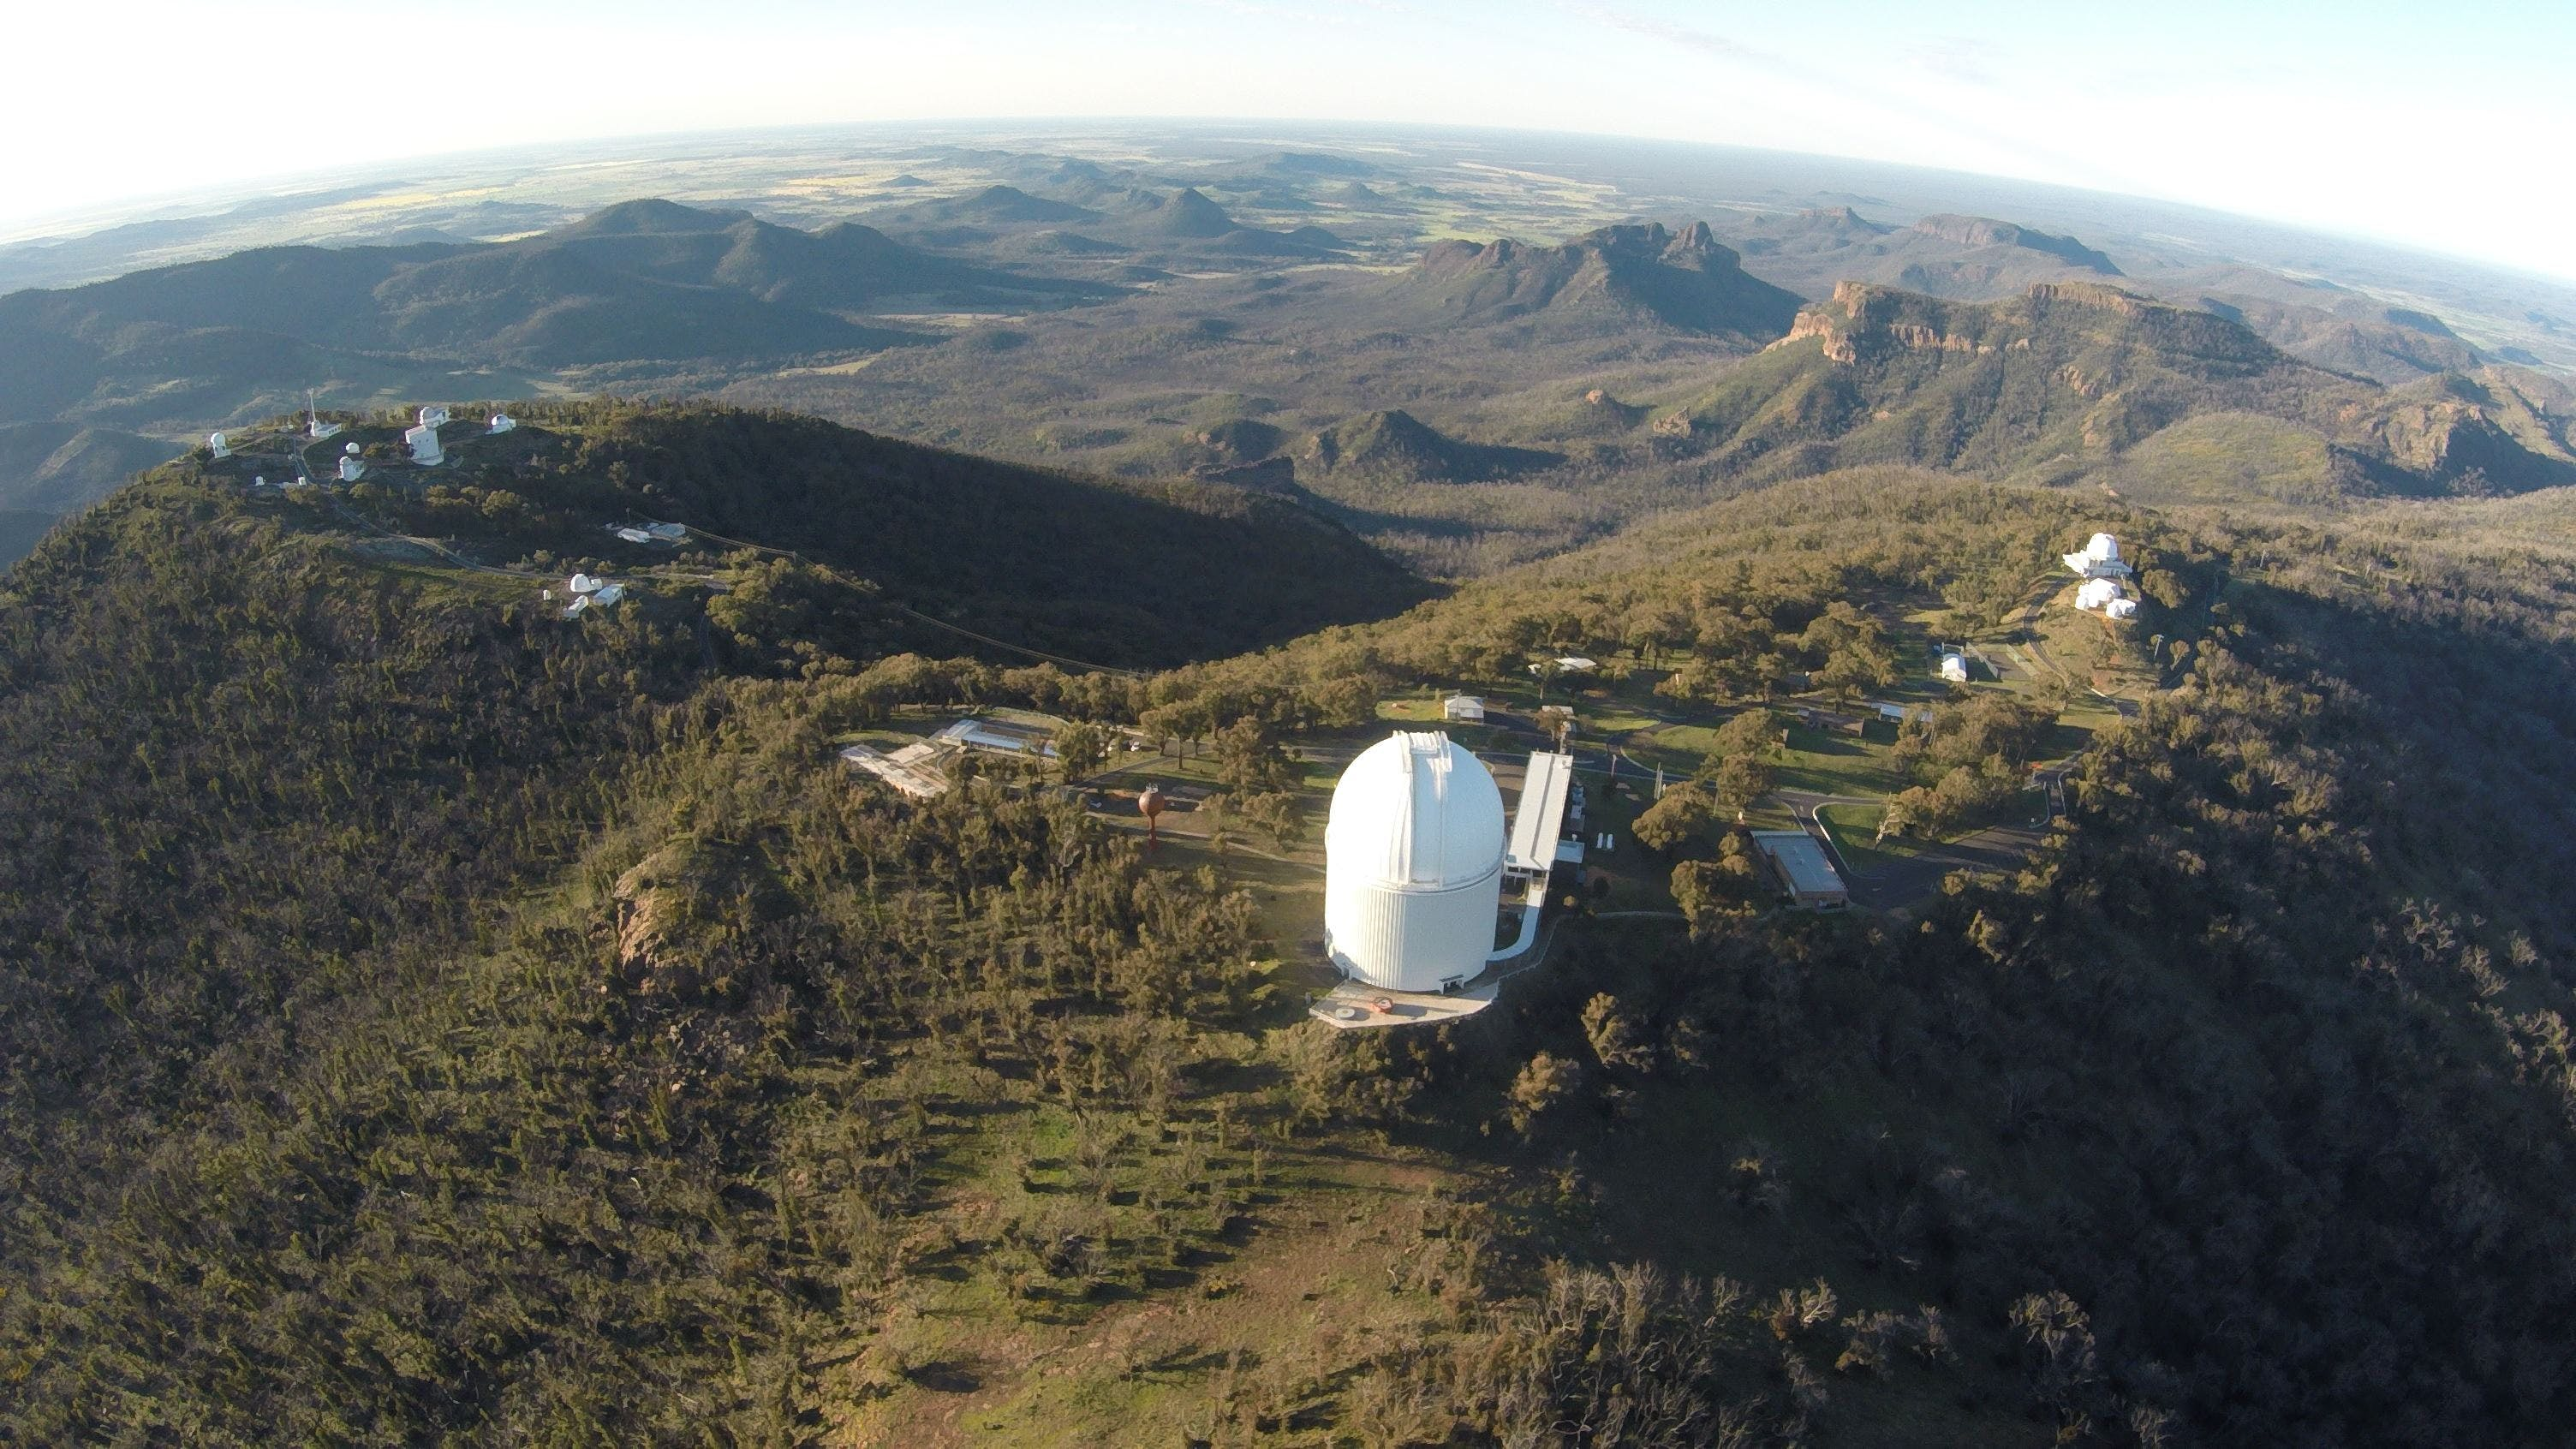 Siding Spring Observatory - Accommodation in Bendigo